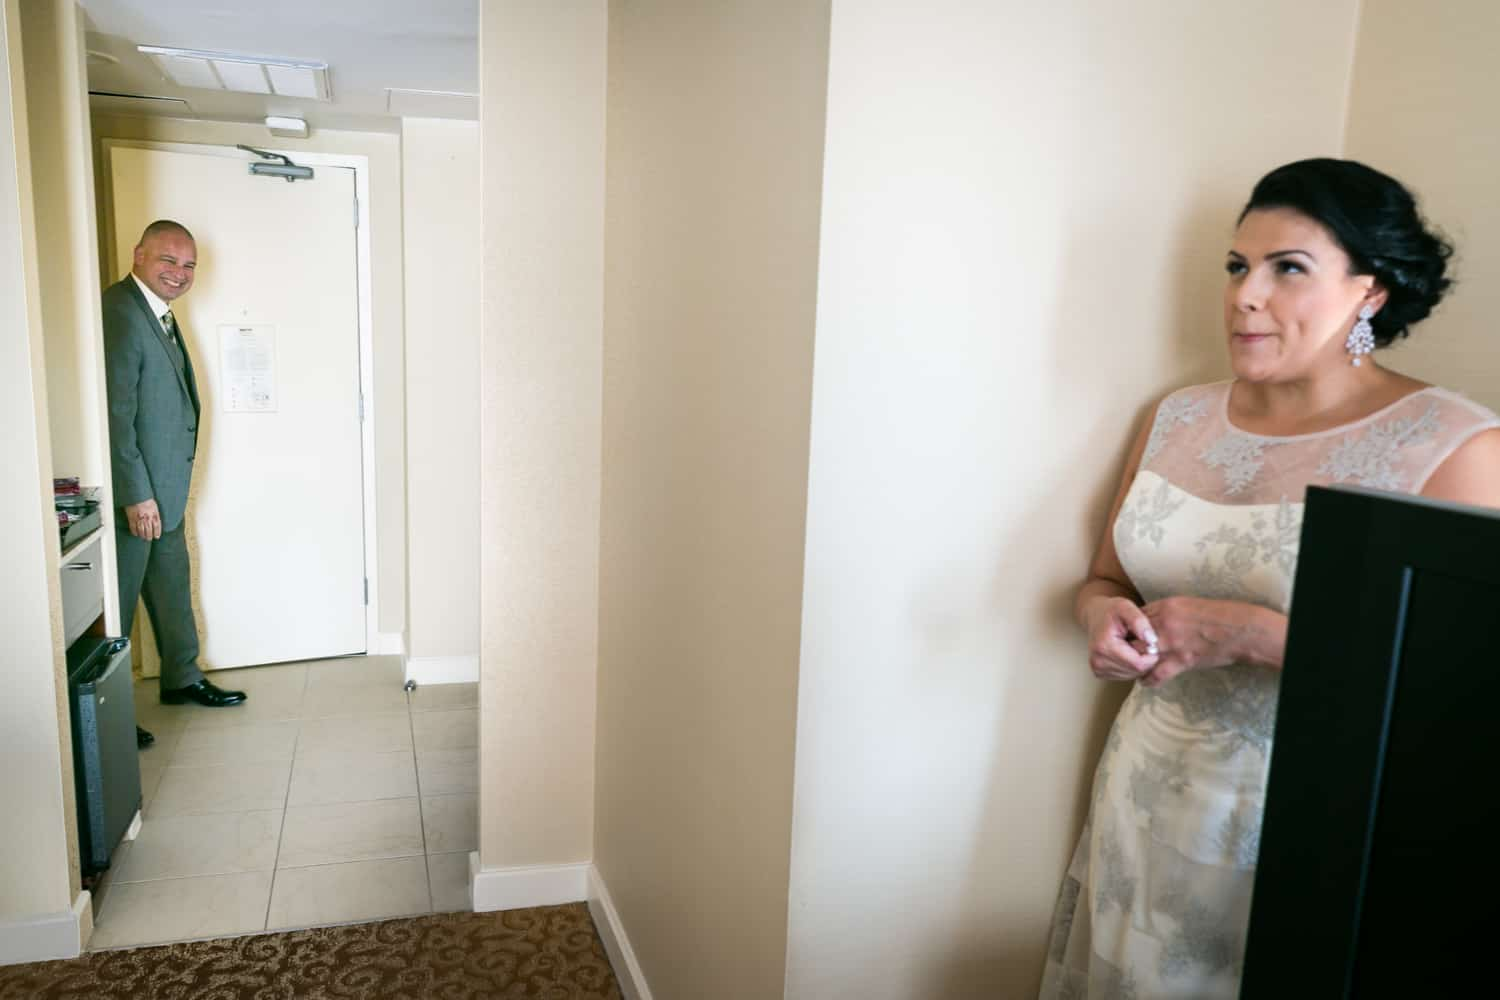 Bride hiding in corner of hotel room while groom walks in door